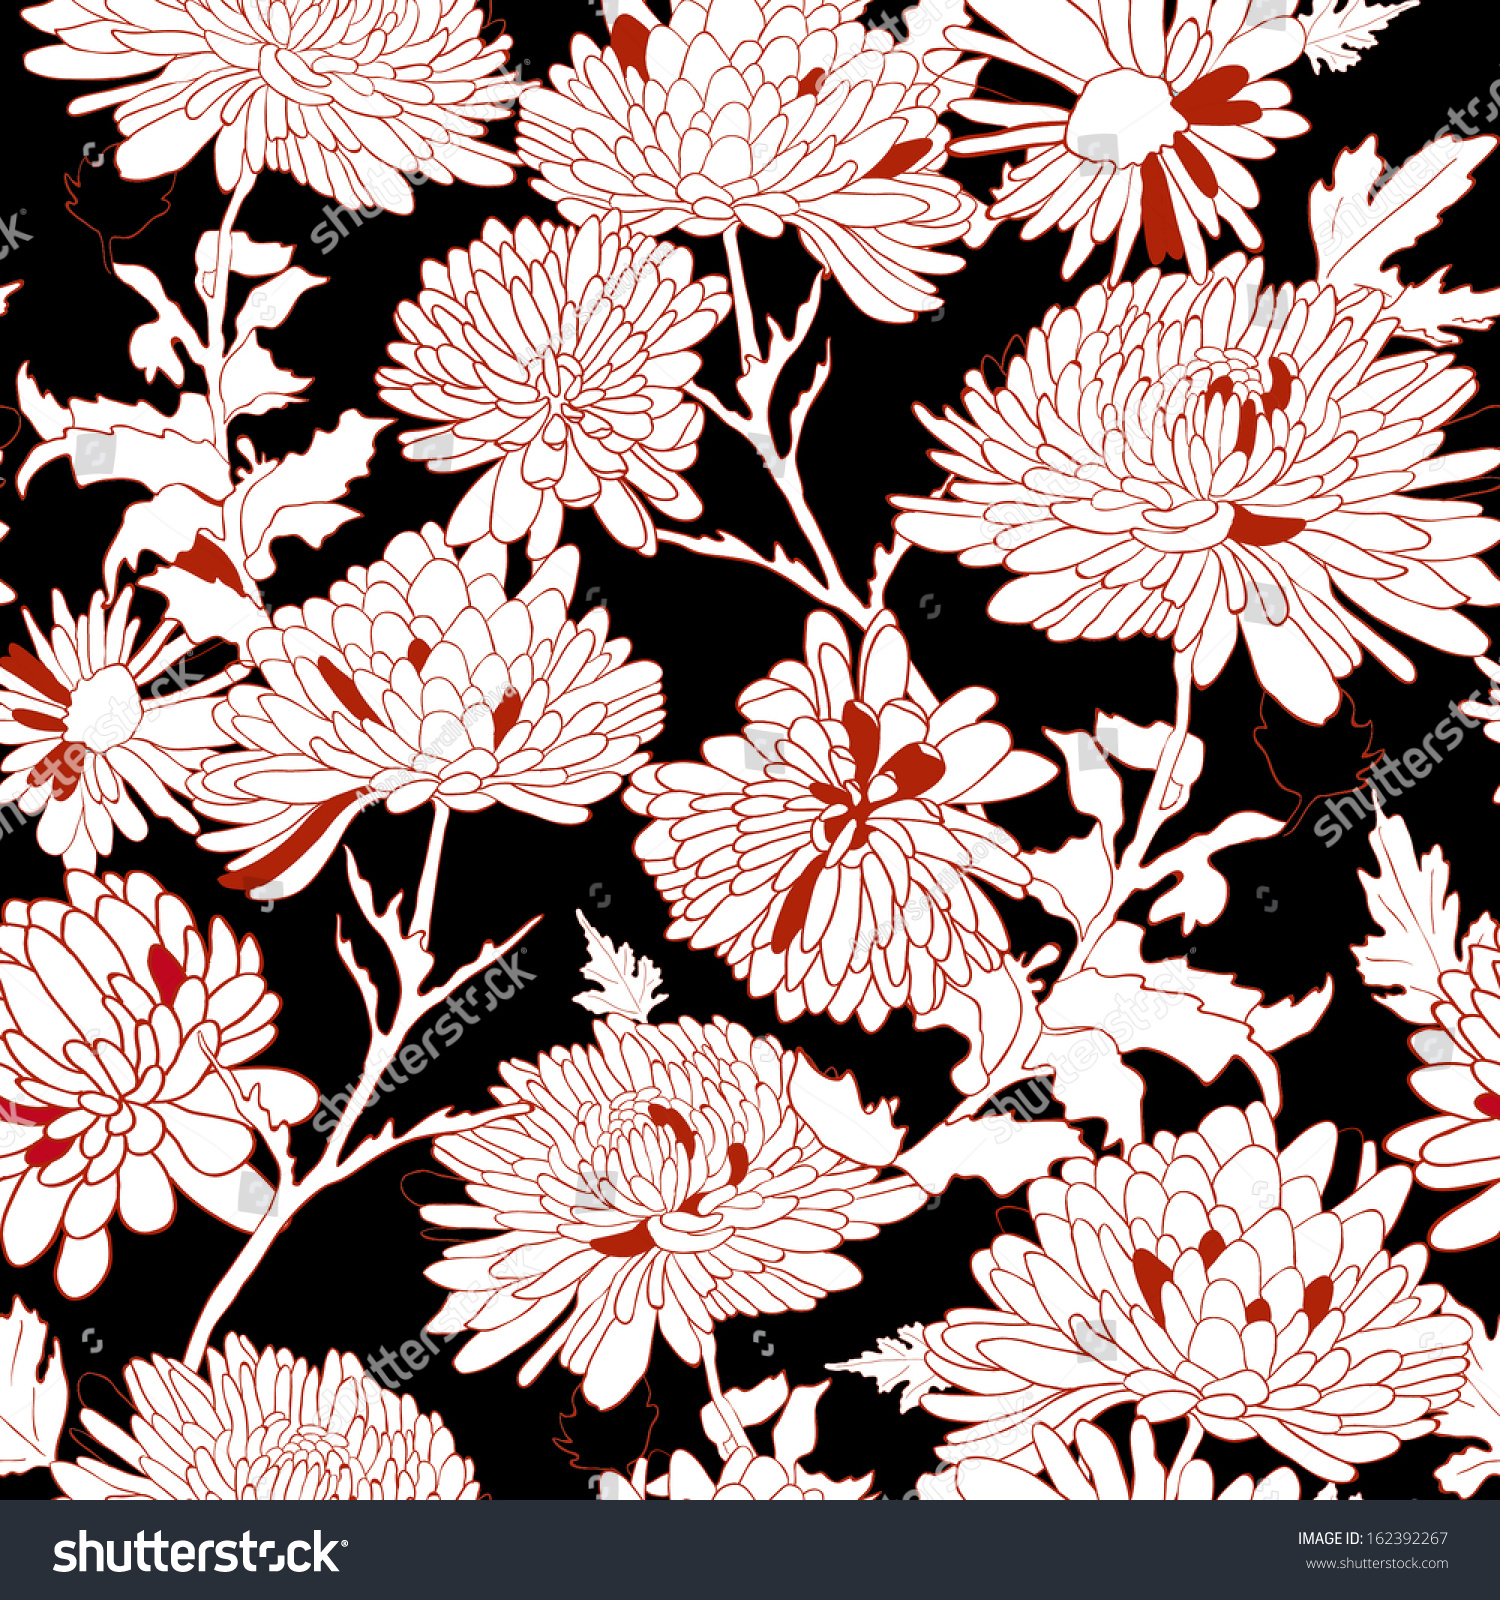 Pink floral seamless vector background floral hrysanthemum seamless - Floral Seamless Pattern Background With Chrysanthemum Vector Illustration